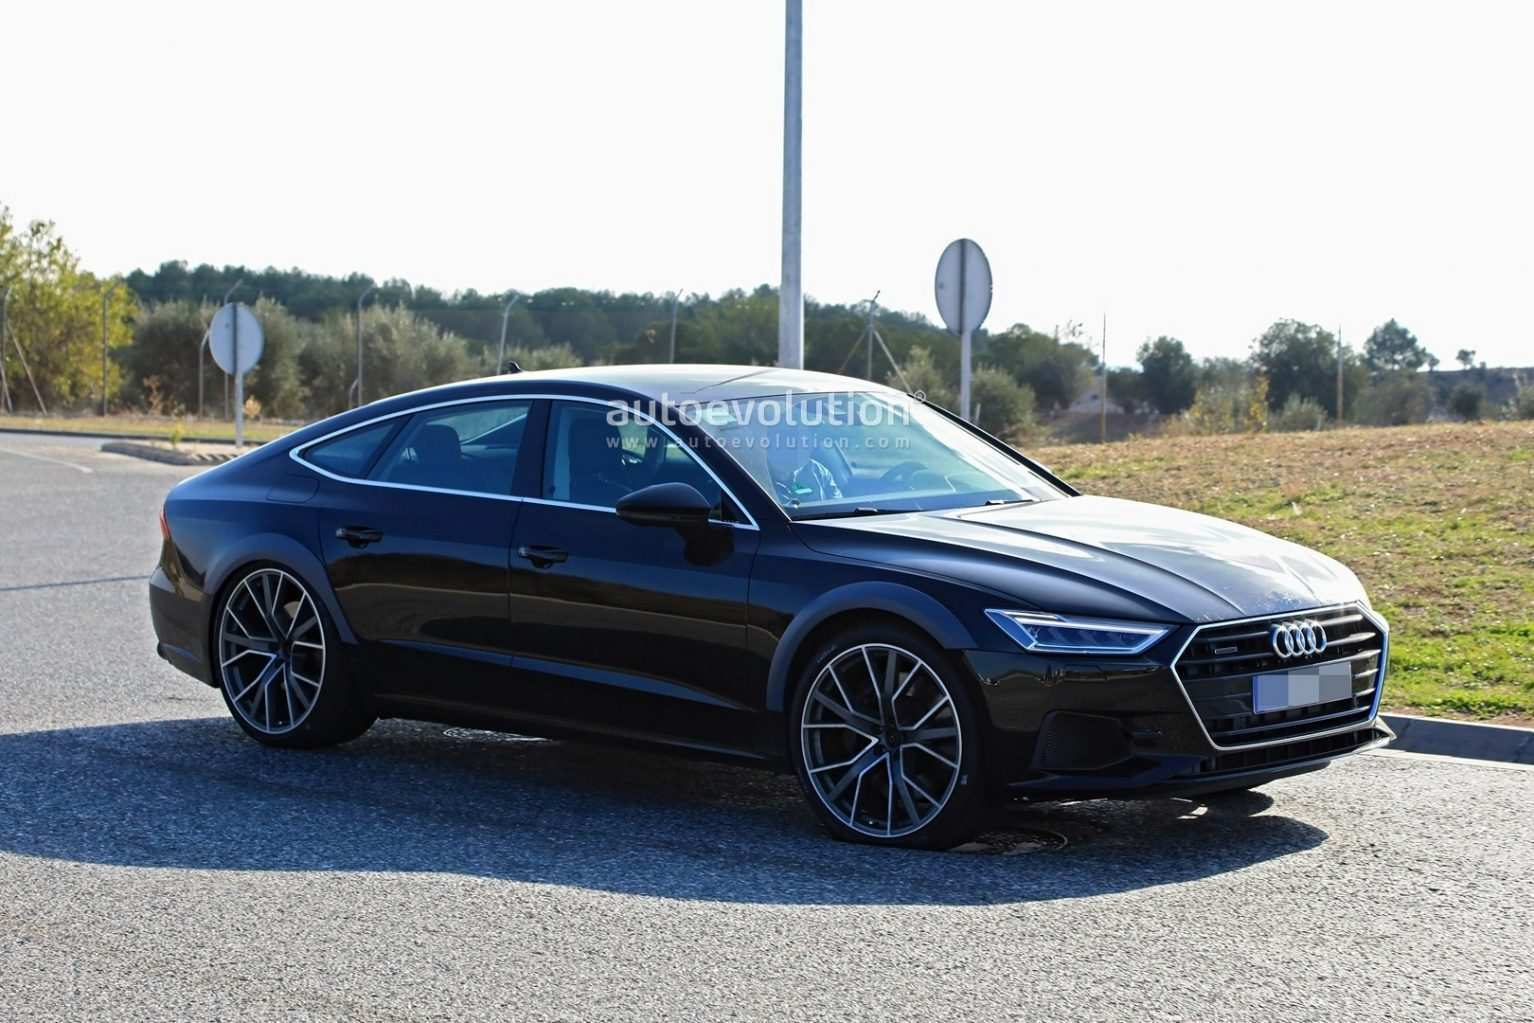 72 Concept of Best New S7 Audi 2019 Interior Pictures with Best New S7 Audi 2019 Interior